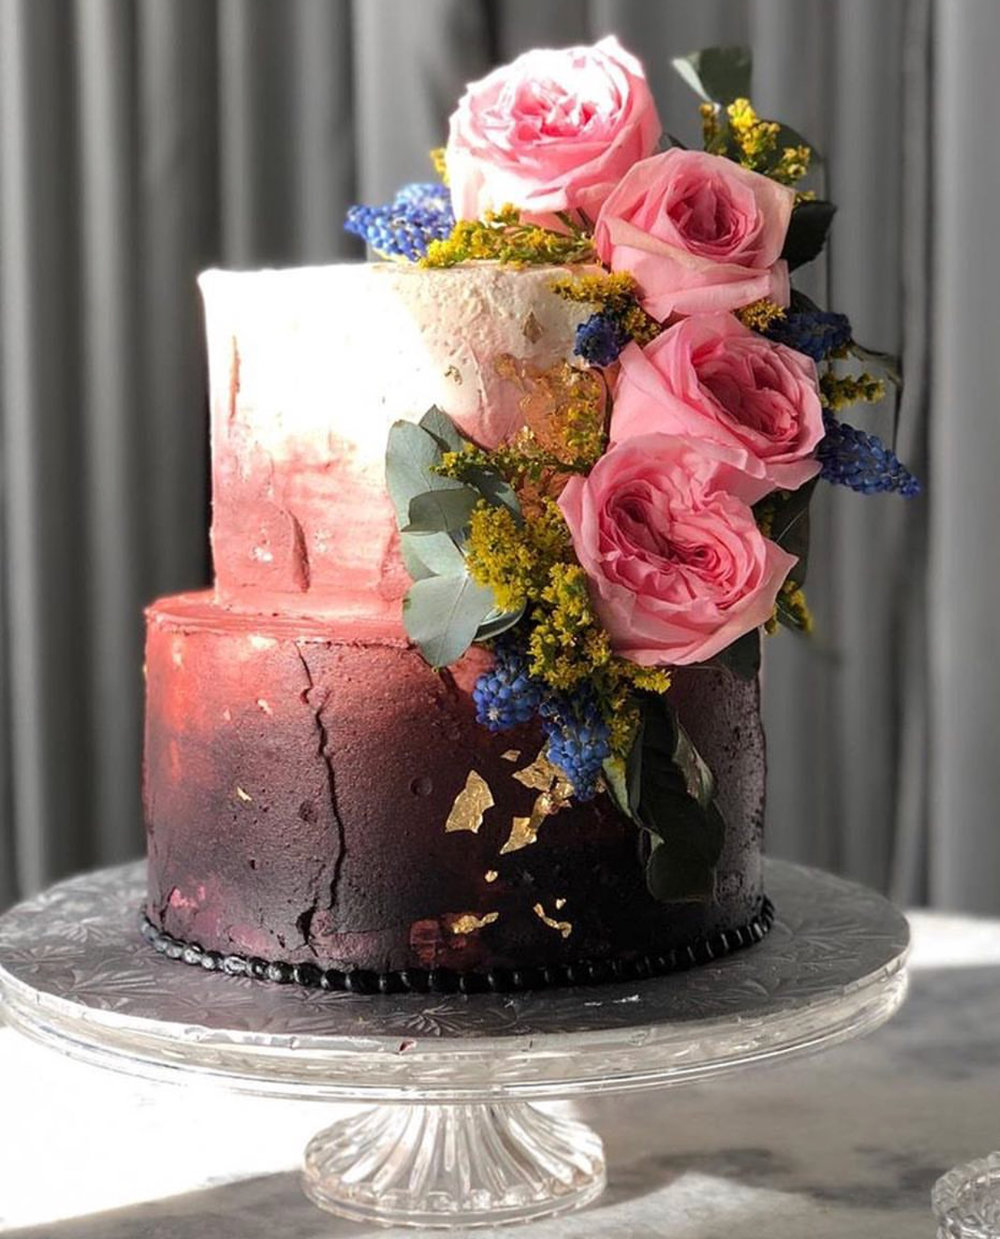 Beautiful cake created by ECBG Cake Studio Chicago!